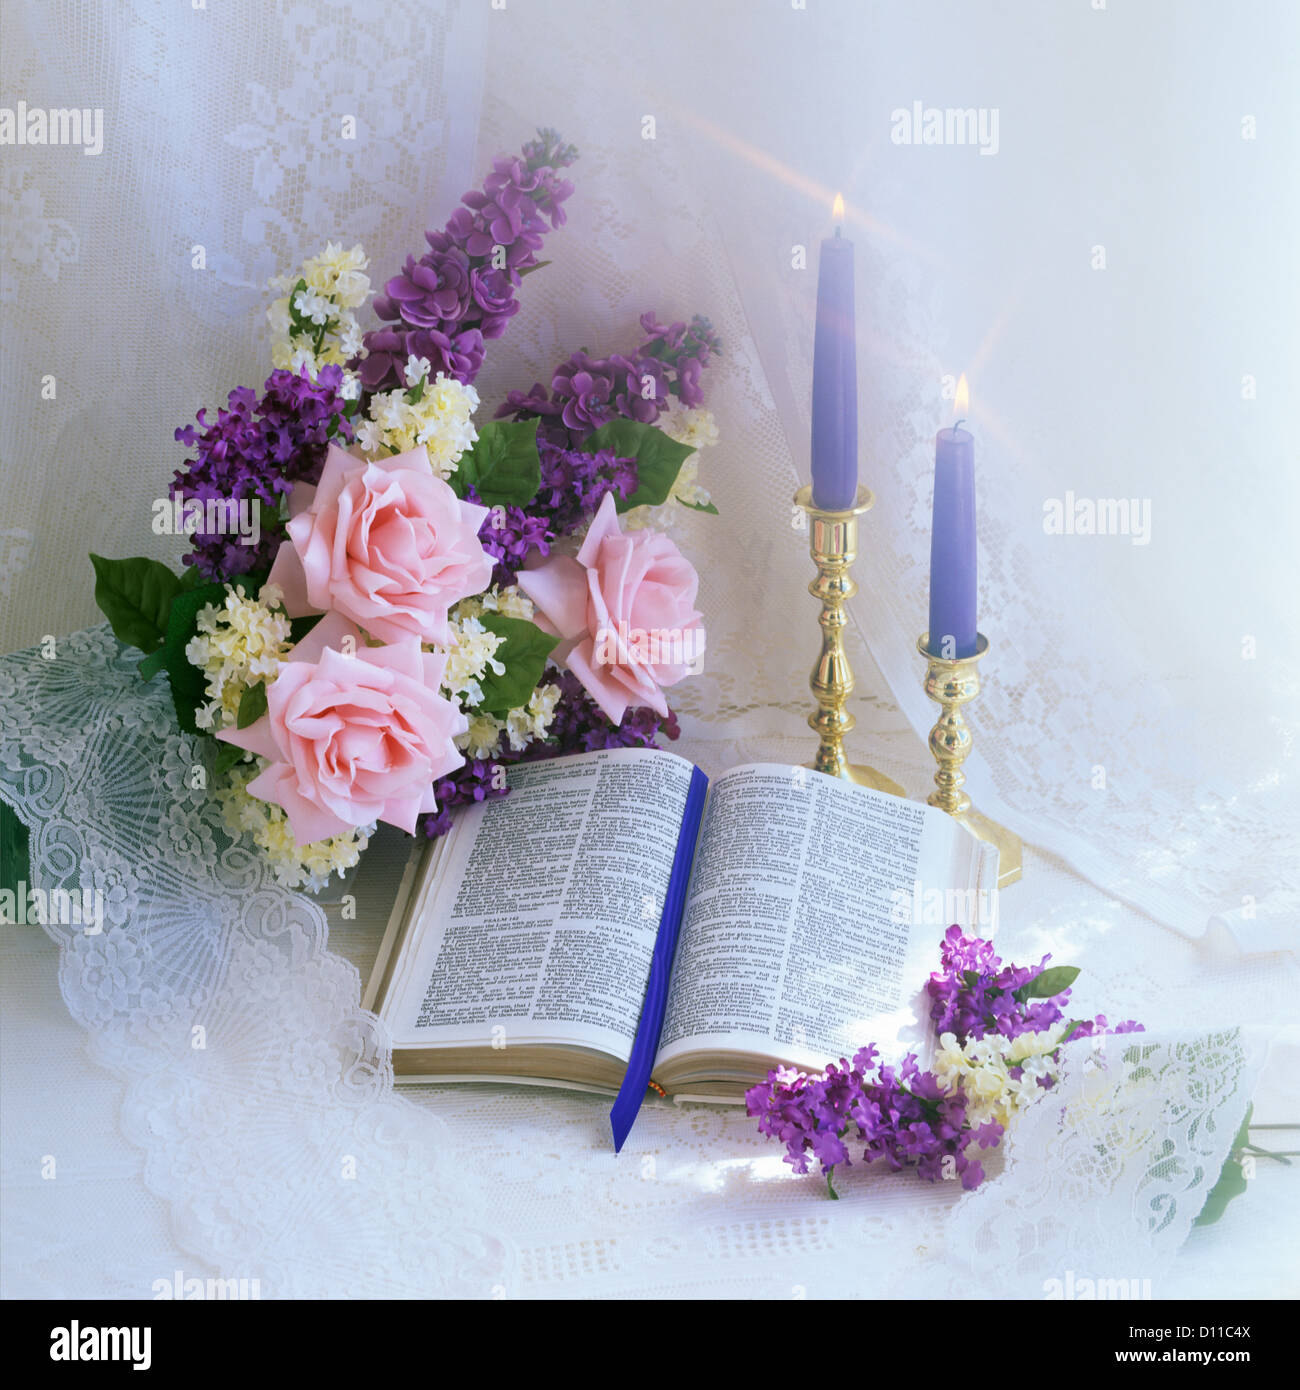 Open bible blue candles and bouquet of pink and purple flowers stock open bible blue candles and bouquet of pink and purple flowers izmirmasajfo